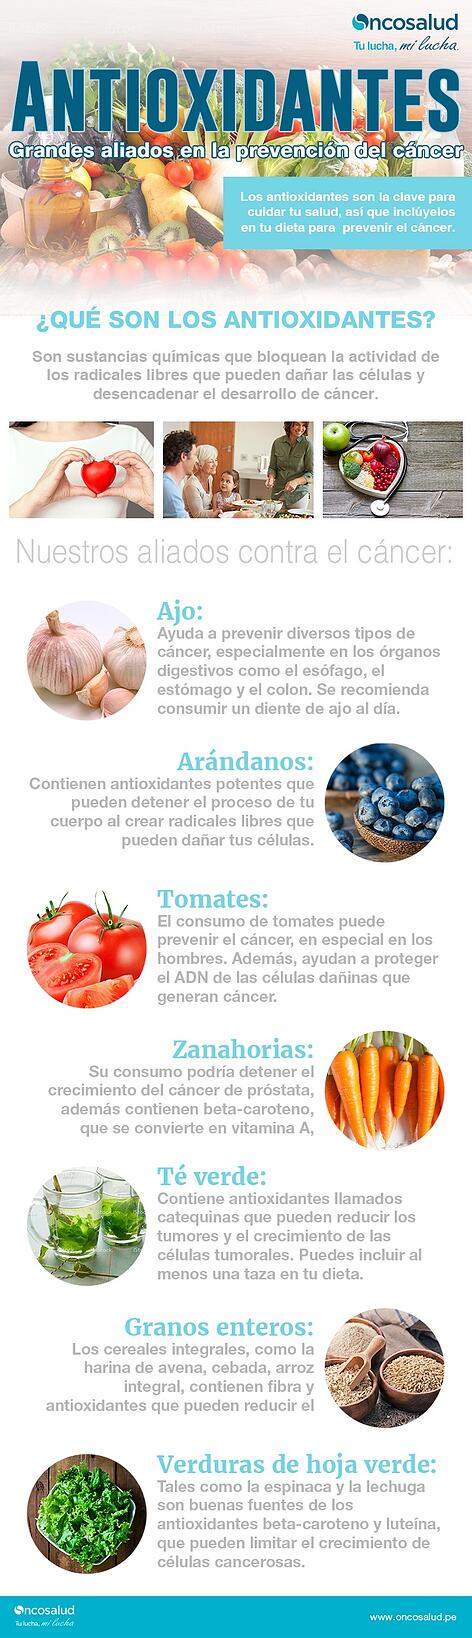 antioxidantes y el cancer